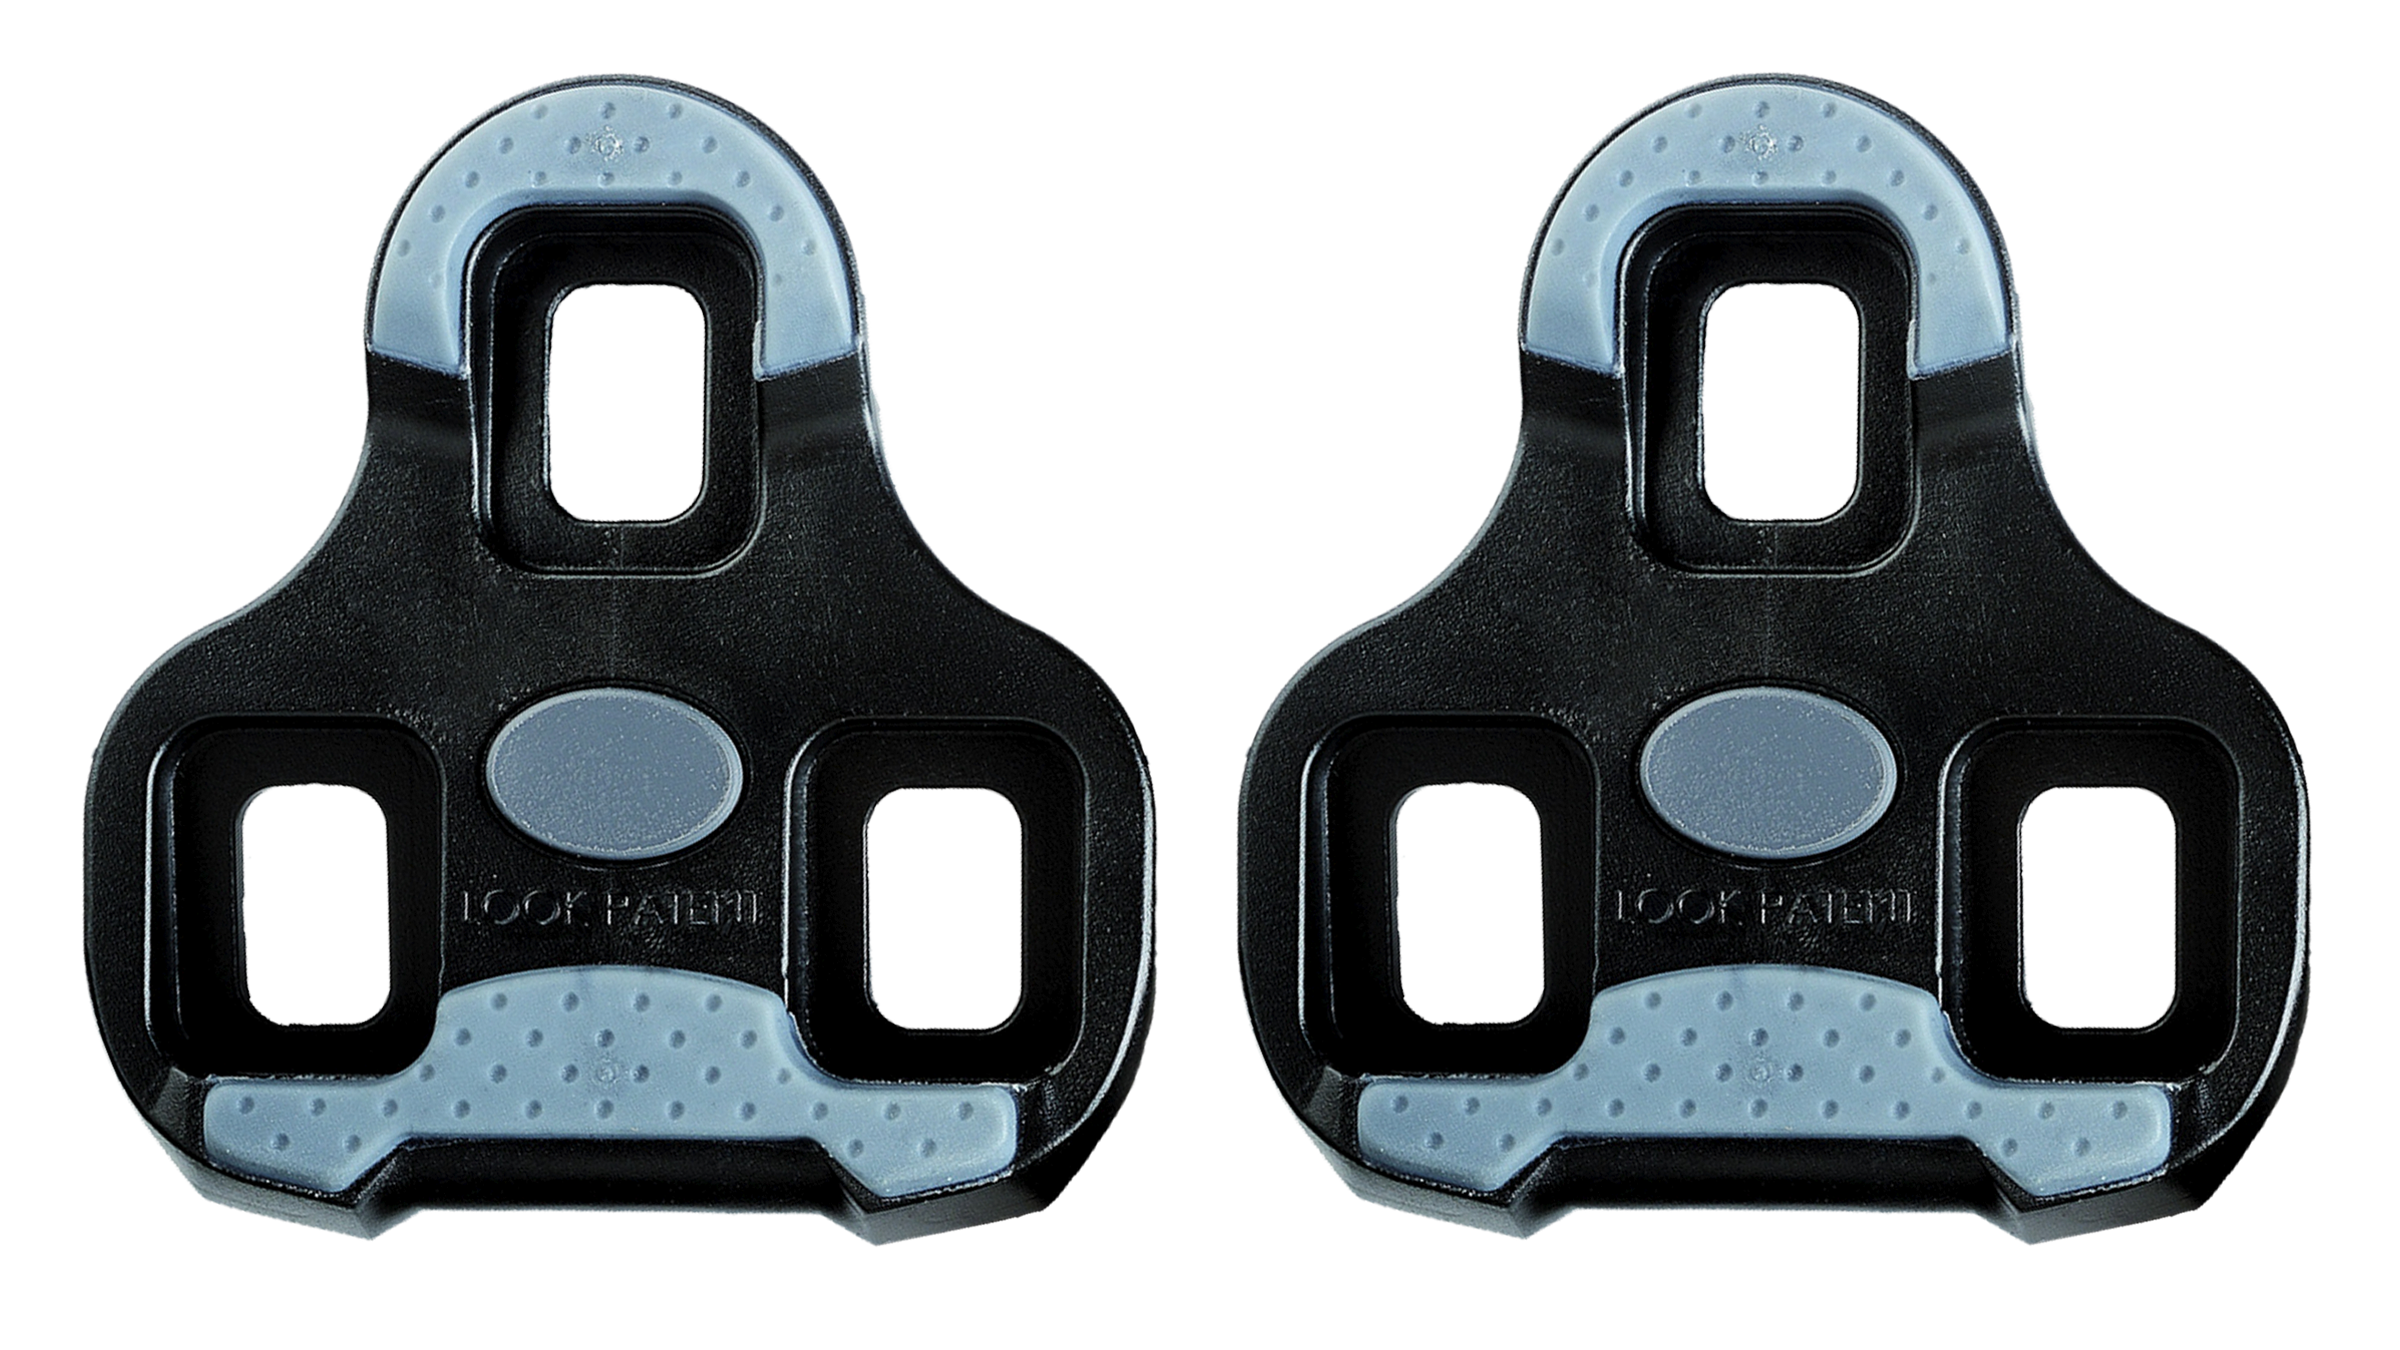 Look Kéo Grip Cleats | Pedal cleats